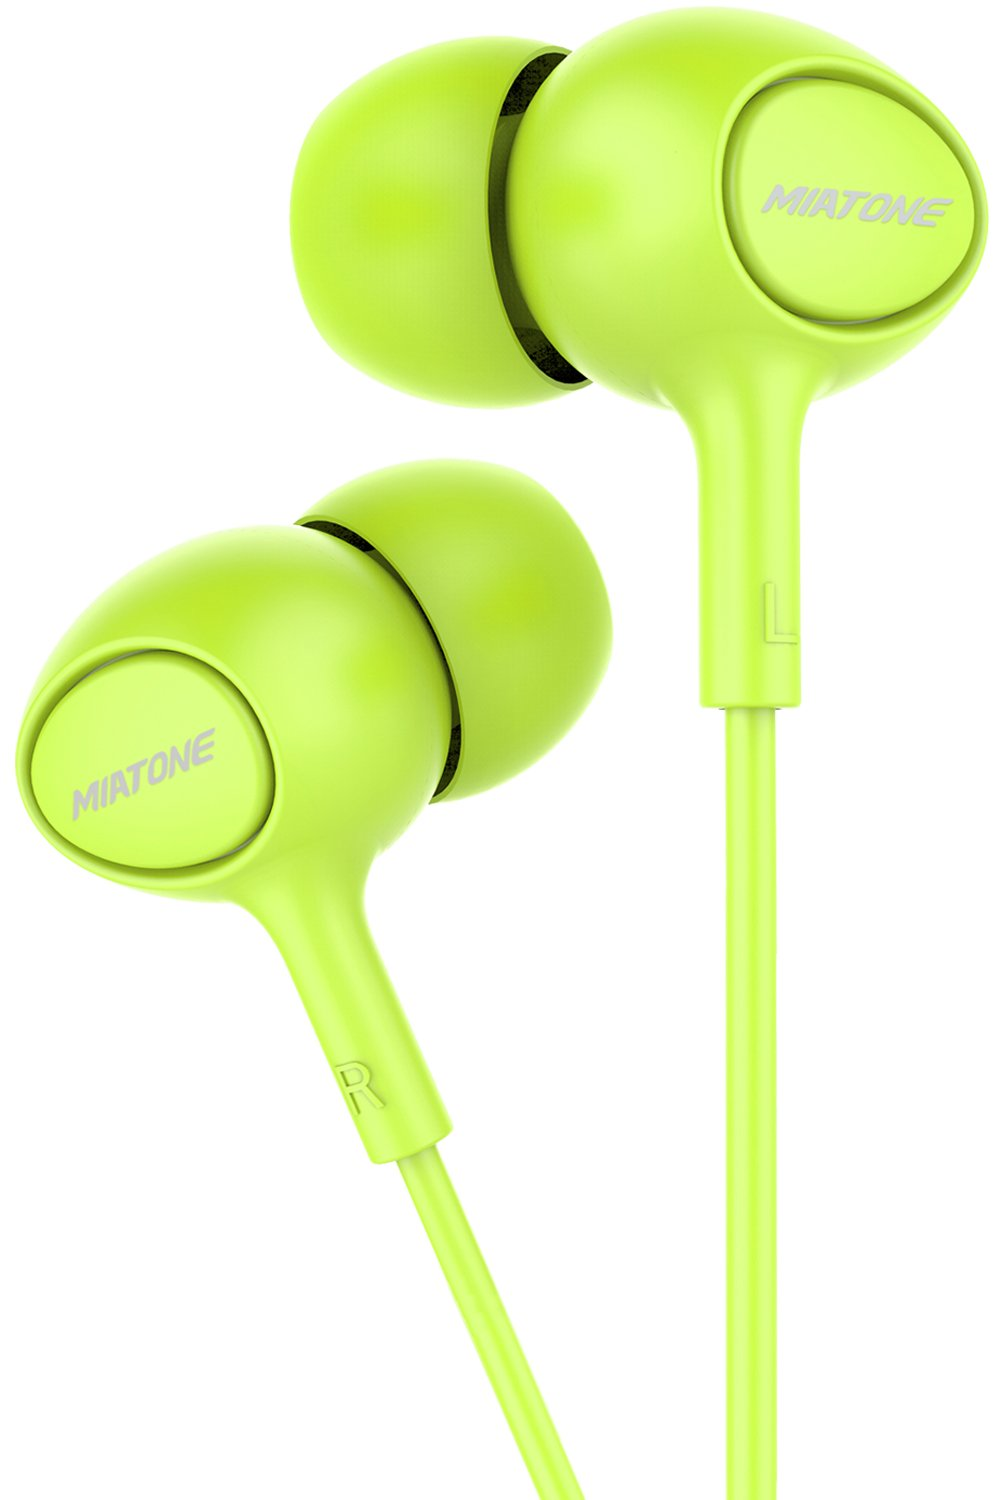 Earbuds with Microphone, MIATONE in-Ear Ear Bud Headphones Dynamic Crystal Clear Sound, Ergonomic Comfort-Fit Earphones – Green